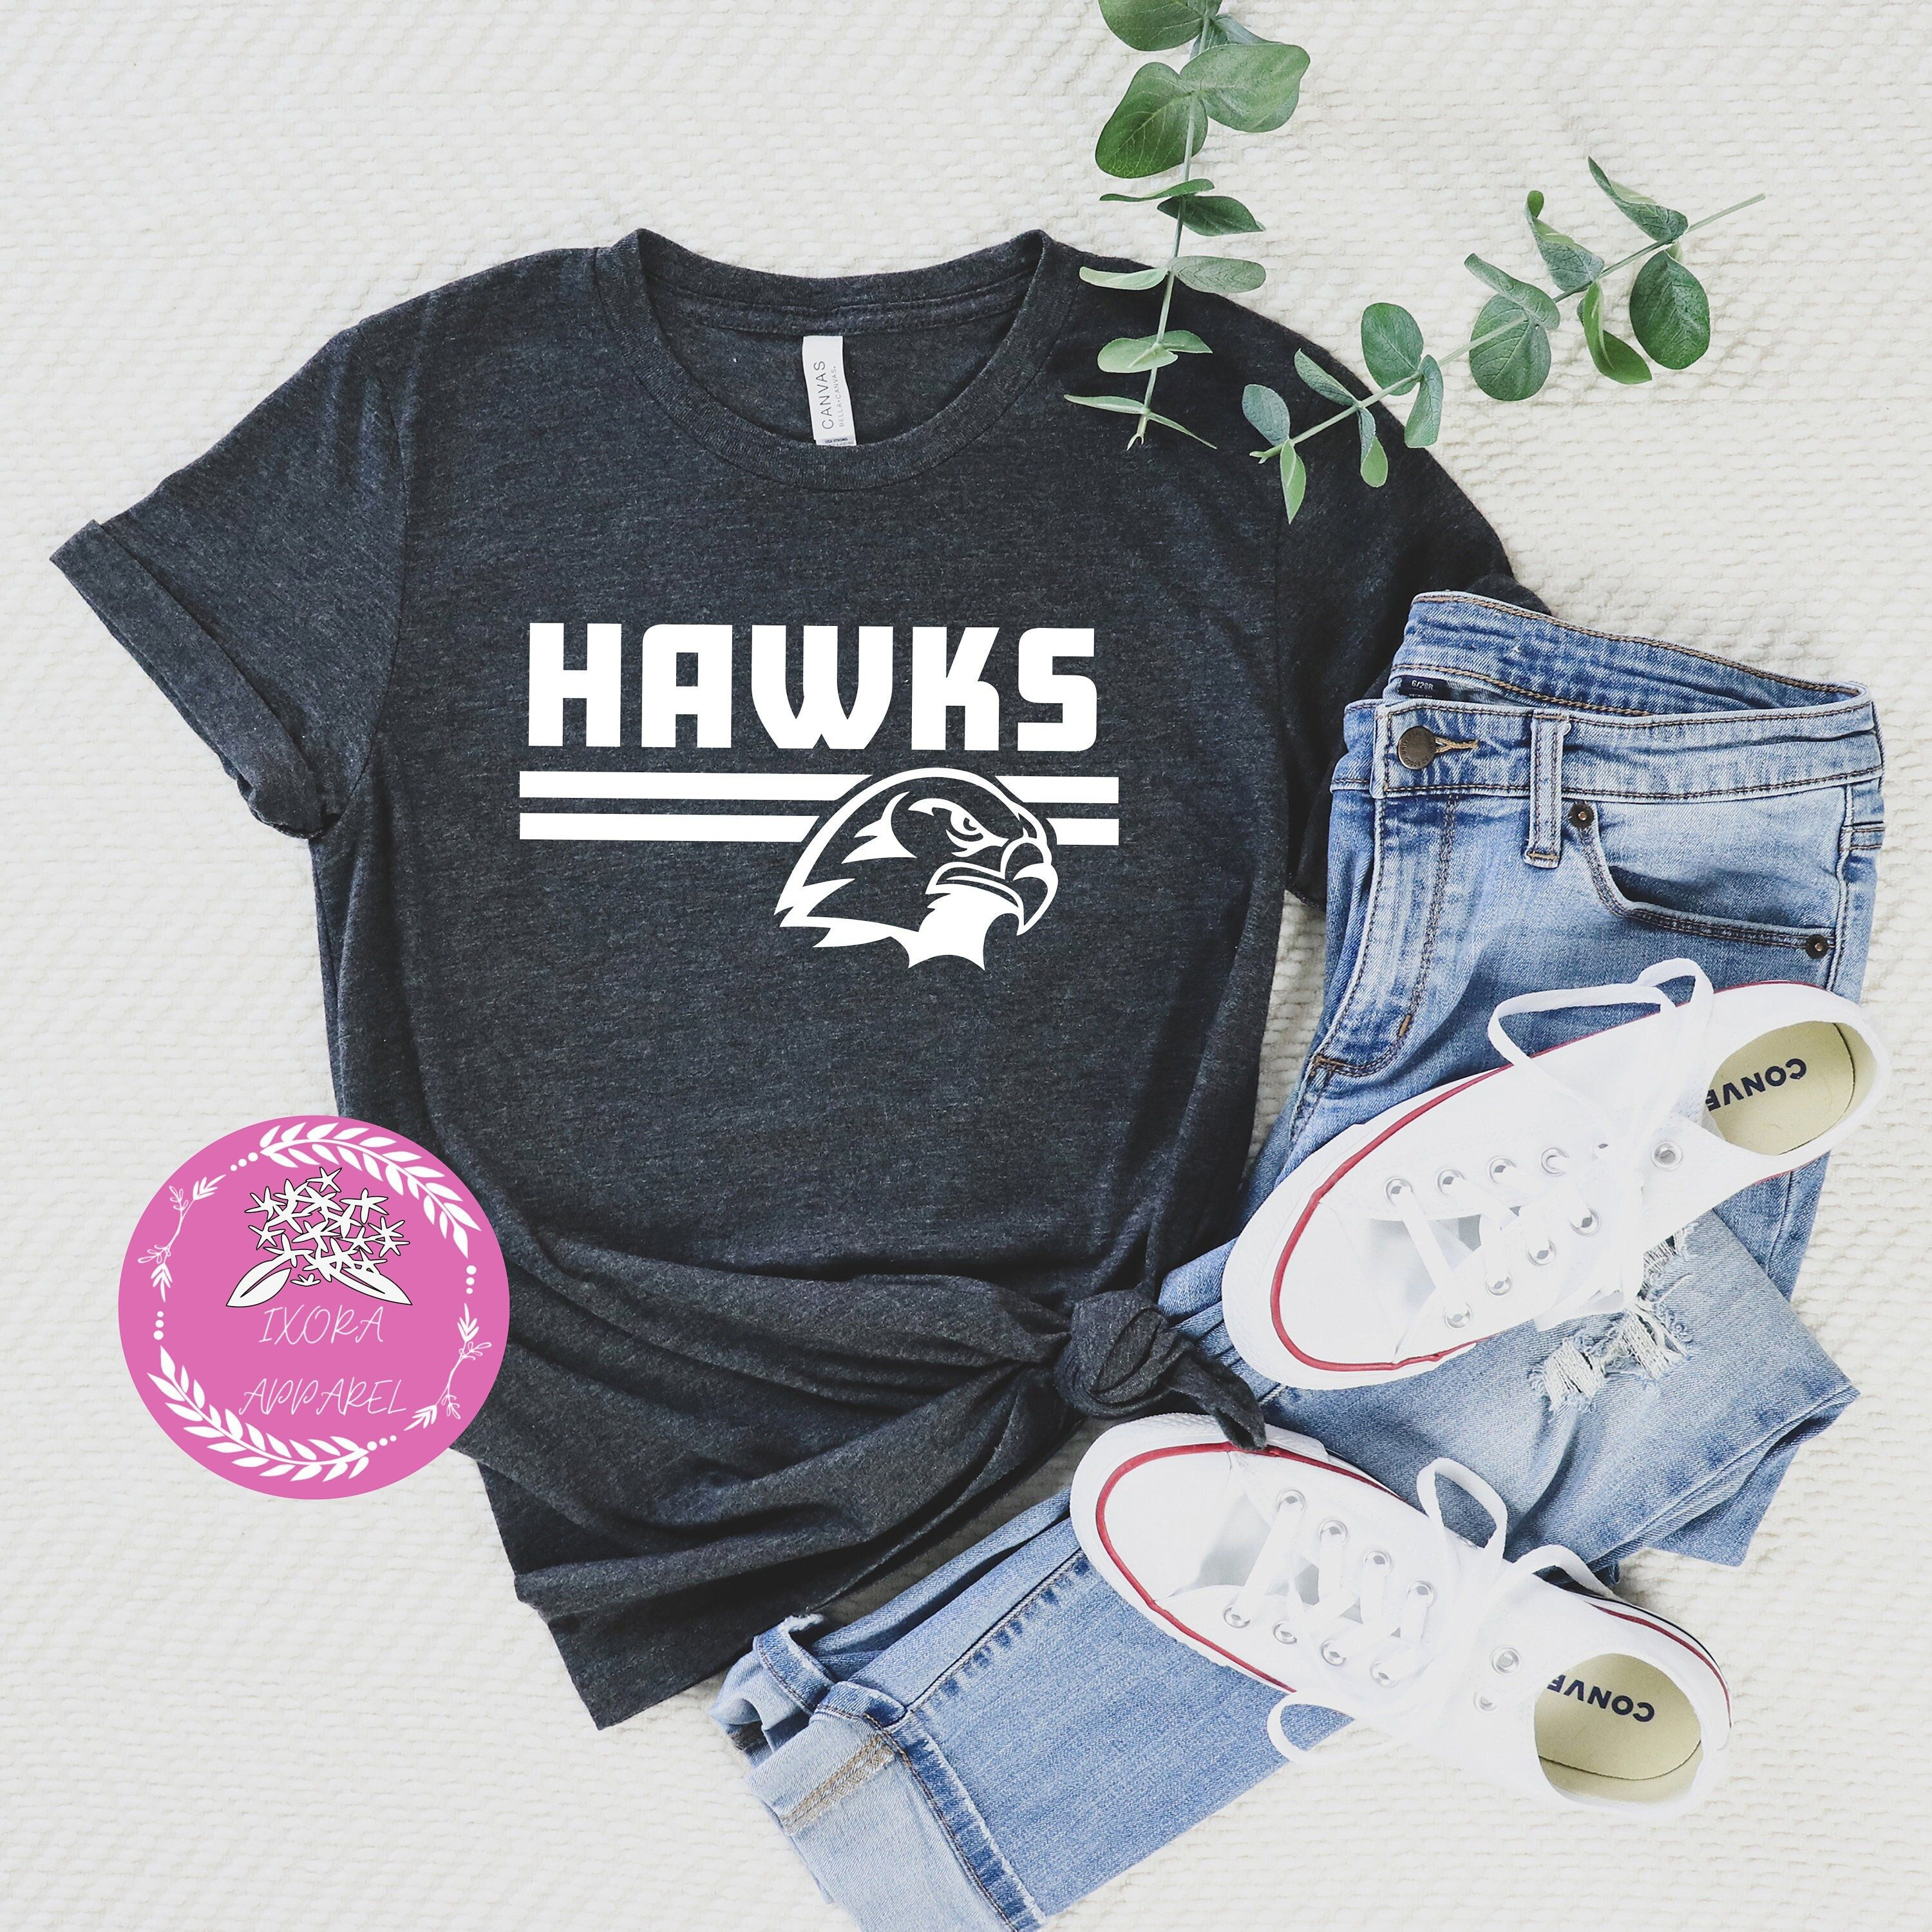 Hawks Shirt, Team Spirit Shirt, Hawks Team Shirt, Hawks Football Shirt, Hawks Fan Shirt, Hawks School Spirit, Hawk Mascot Shirt Welcome to our Etsy store. Please choose the shirt color carefully since they vary each other. Thank you for stopping by. We are happy to provide handmade shirts for you. Now, you can find out our products and details below. If you have any questions please let us know. DISCLAMIER PLEASE READ ALL OF THE DETAILS BEFORE PLACING YOUR ORDER!! How to order: 1. Choose the siz